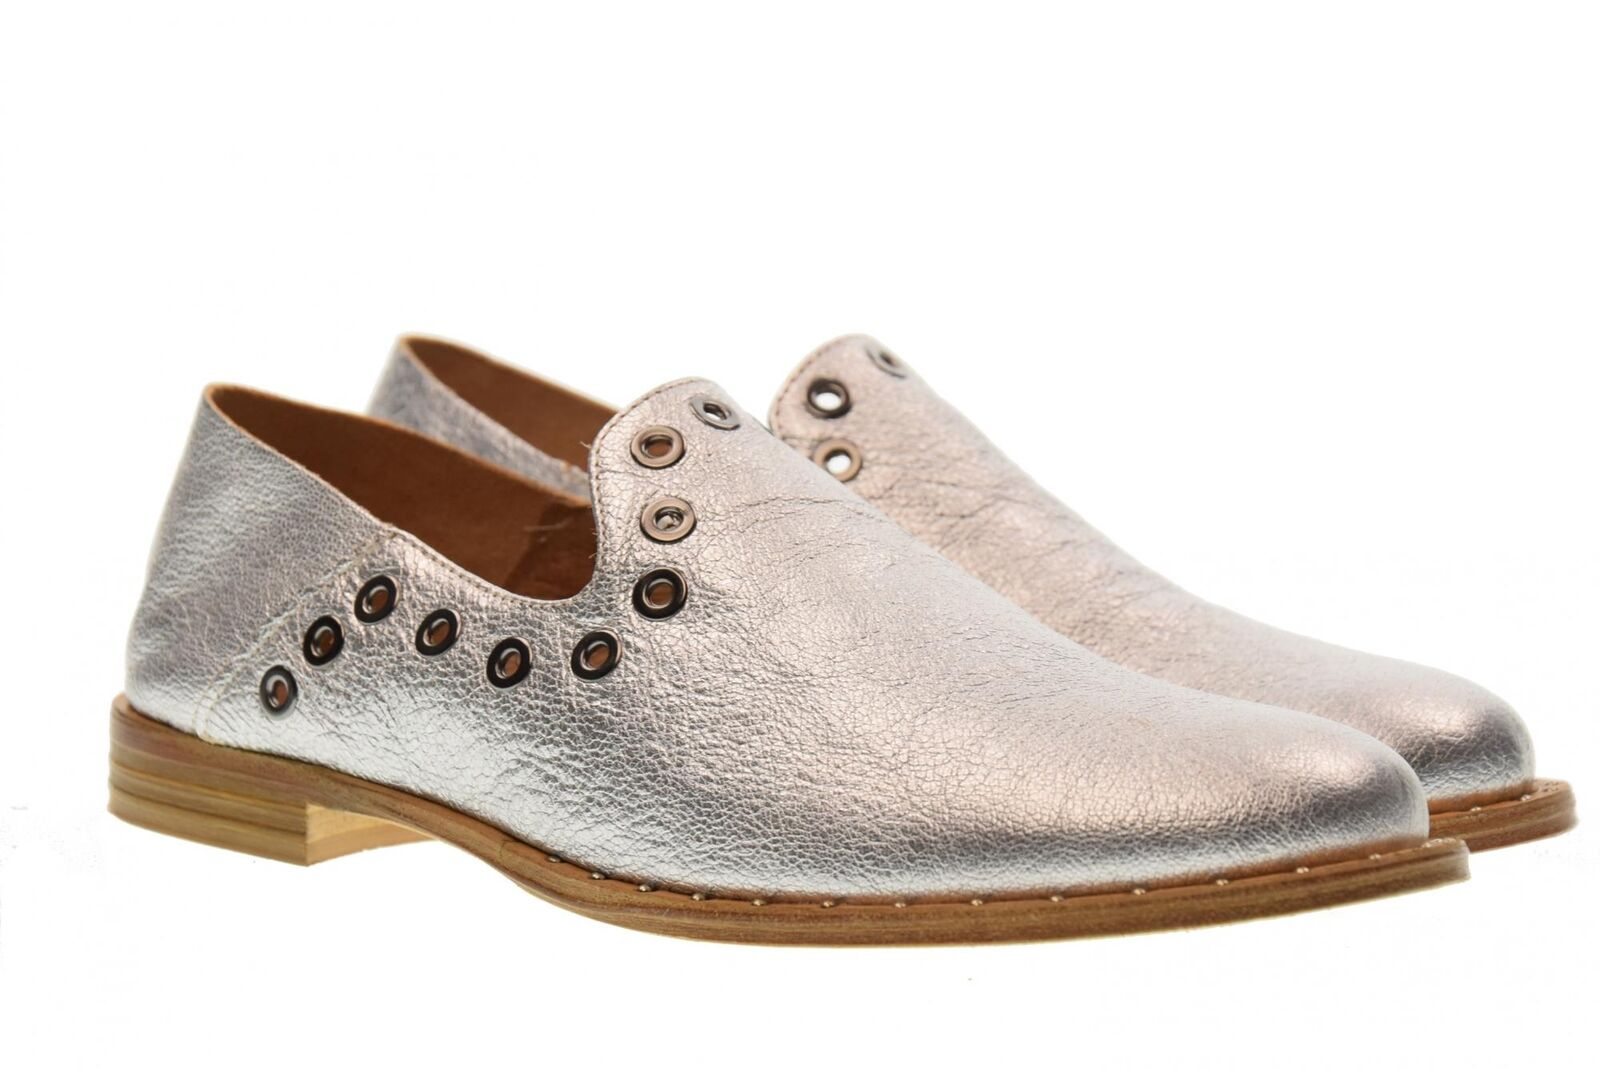 Erman's P18f Chaussures mocassin ARGENT ST01